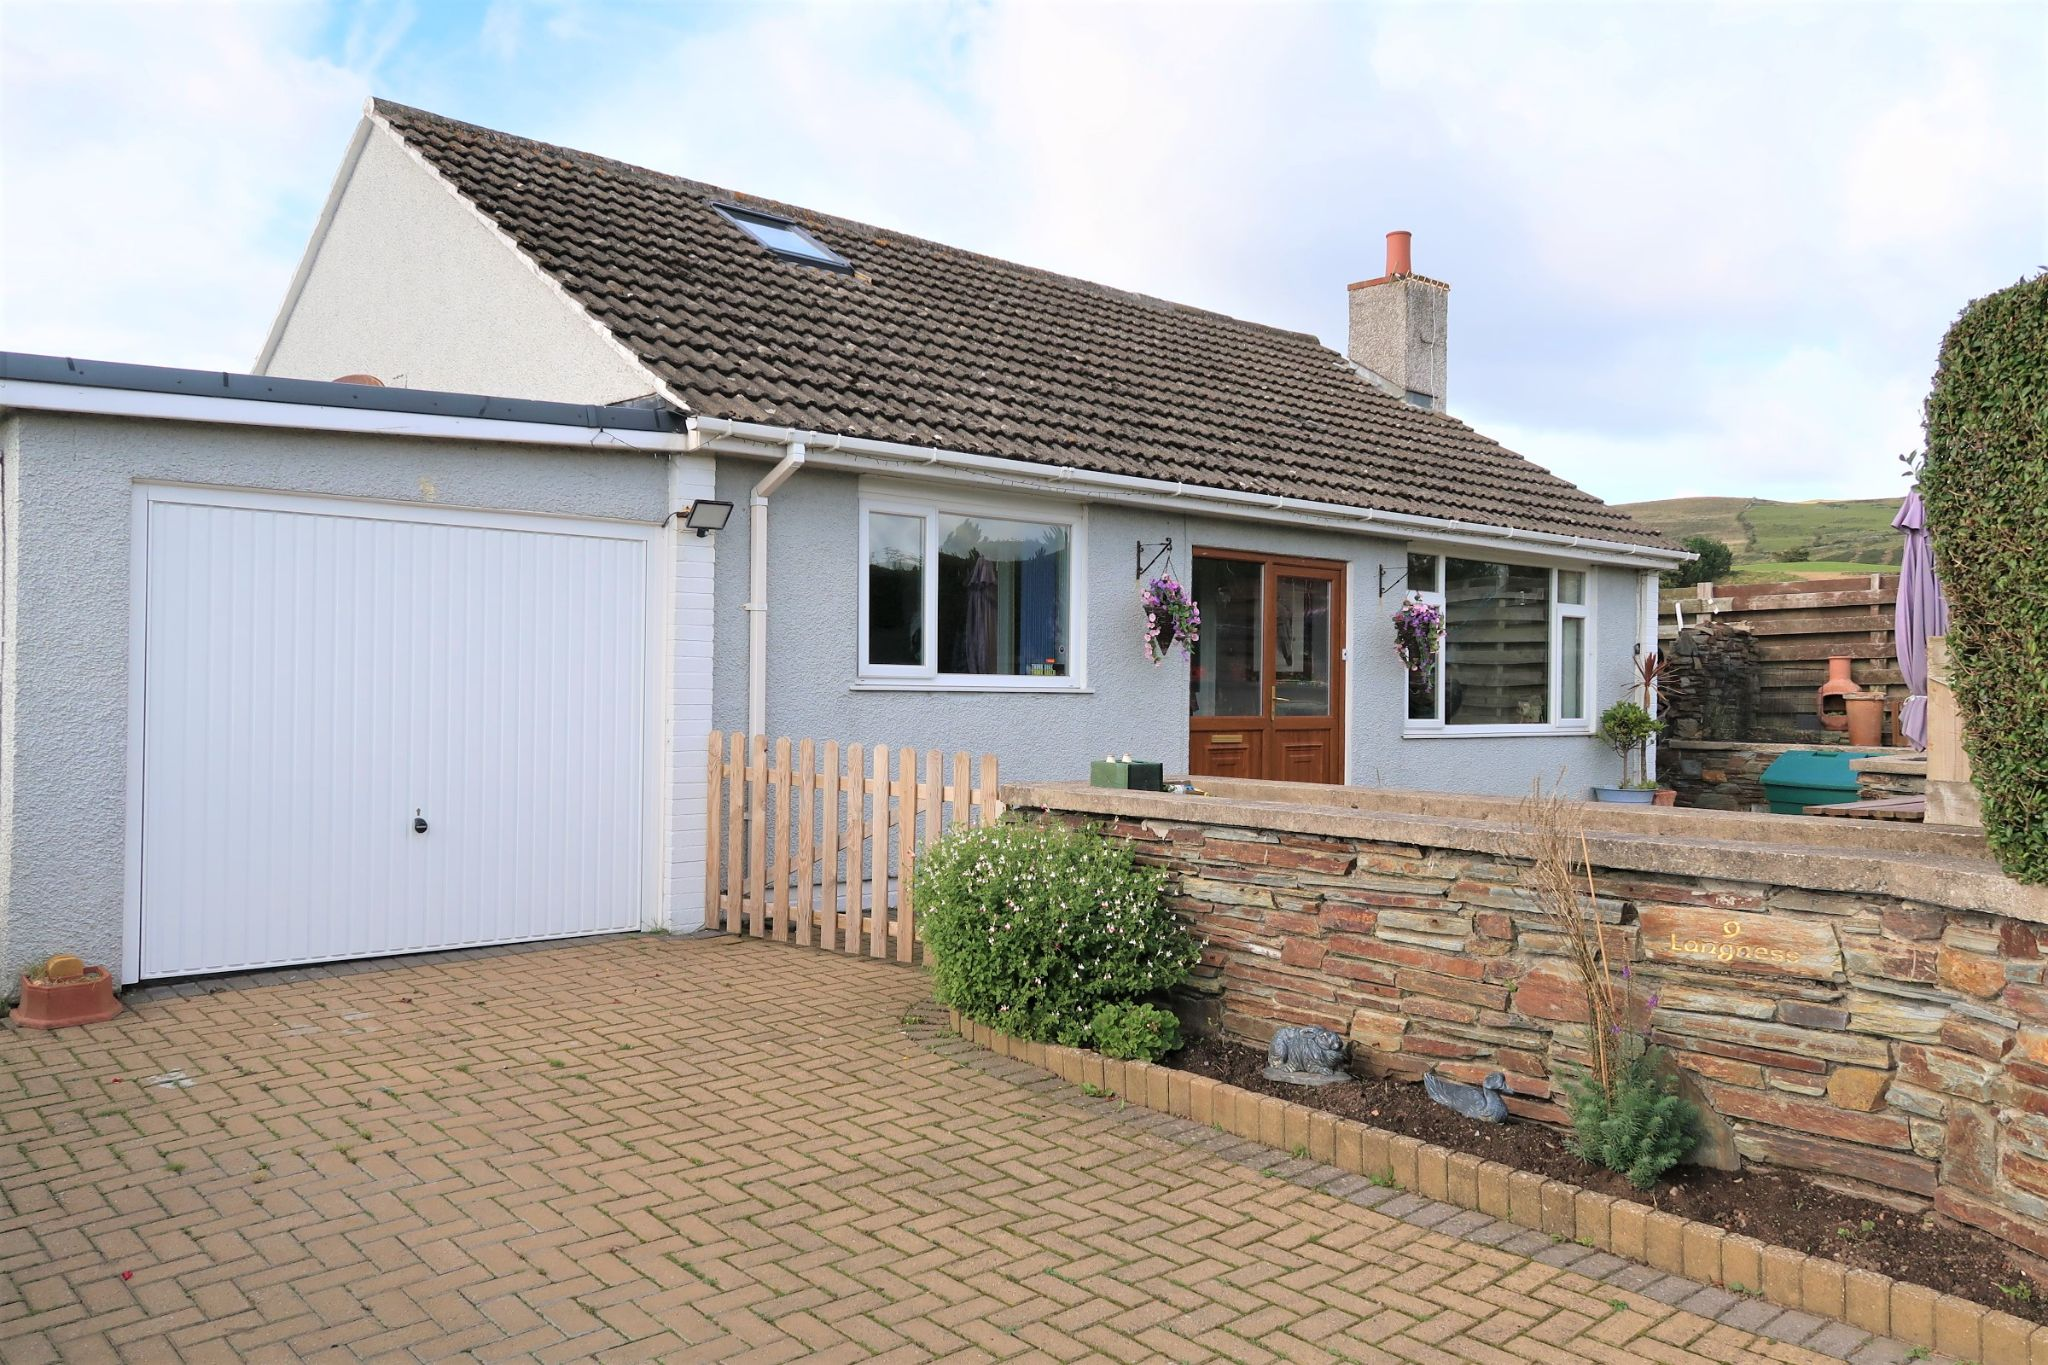 2 bedroom detached bungalow For Sale in Port Erin - Photograph 1